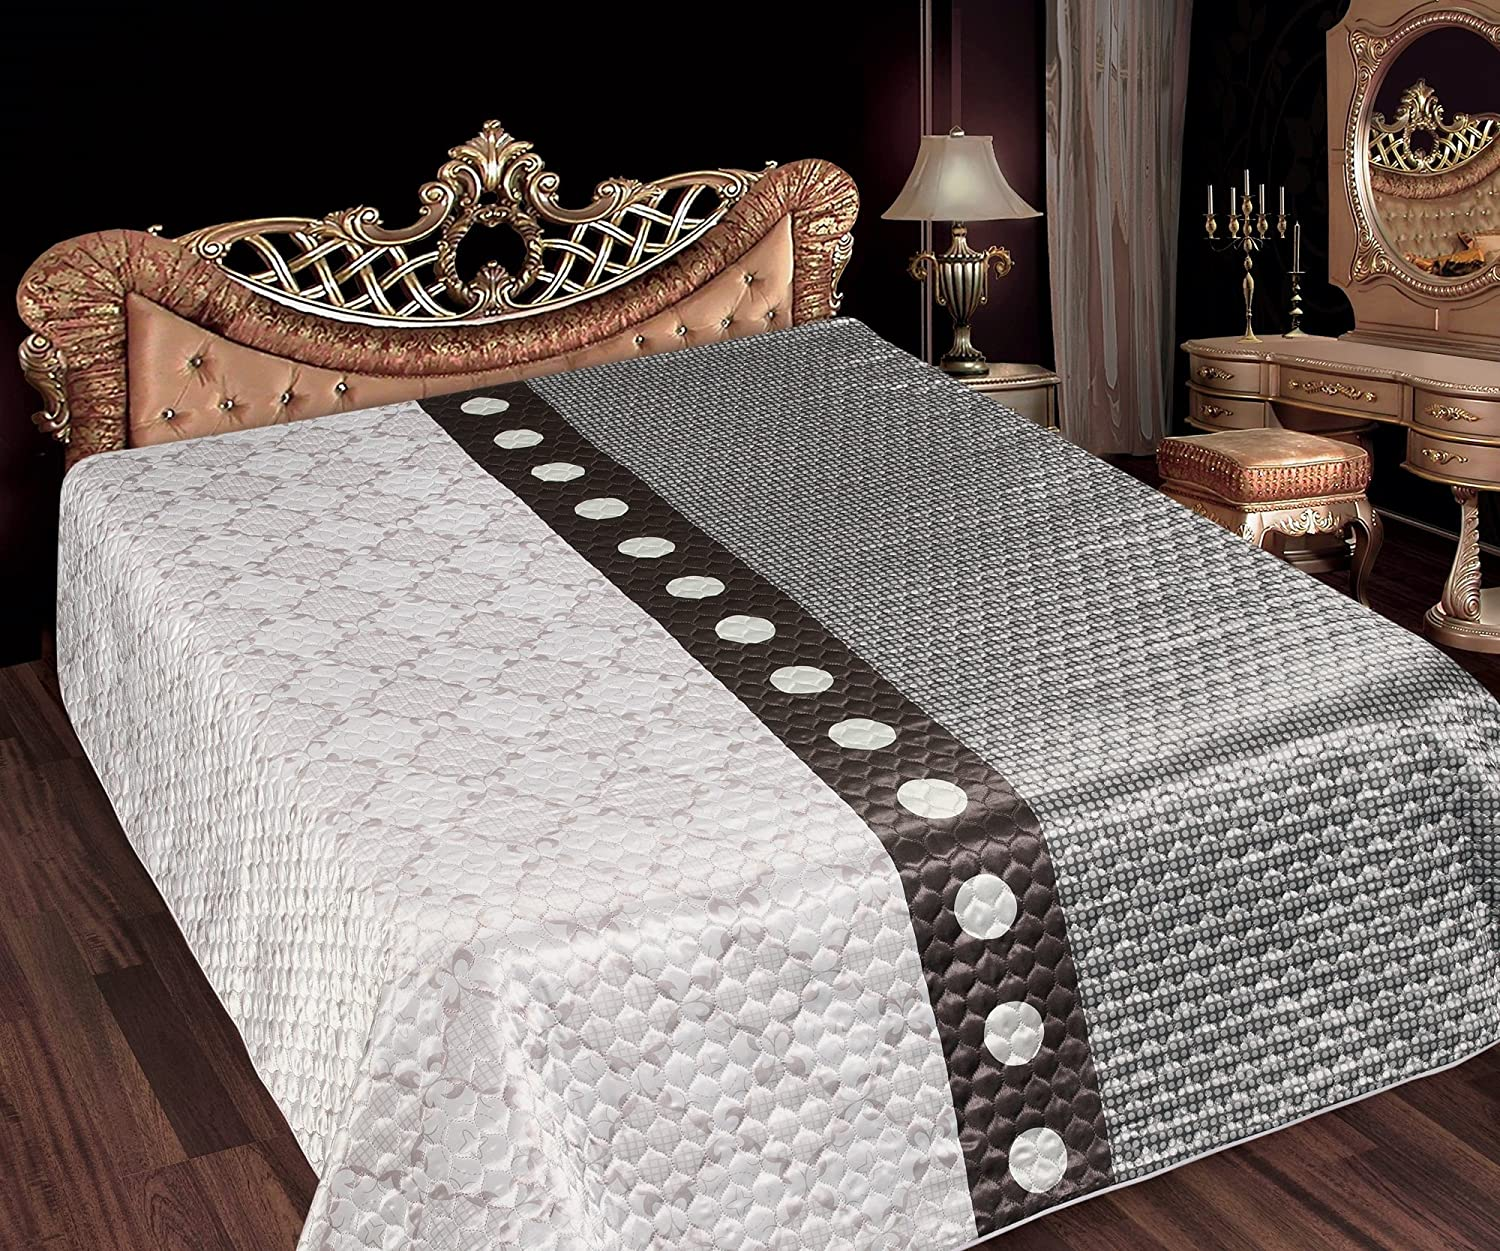 tagesdecke 200x220 cm perle bett berwurf bettdecke. Black Bedroom Furniture Sets. Home Design Ideas